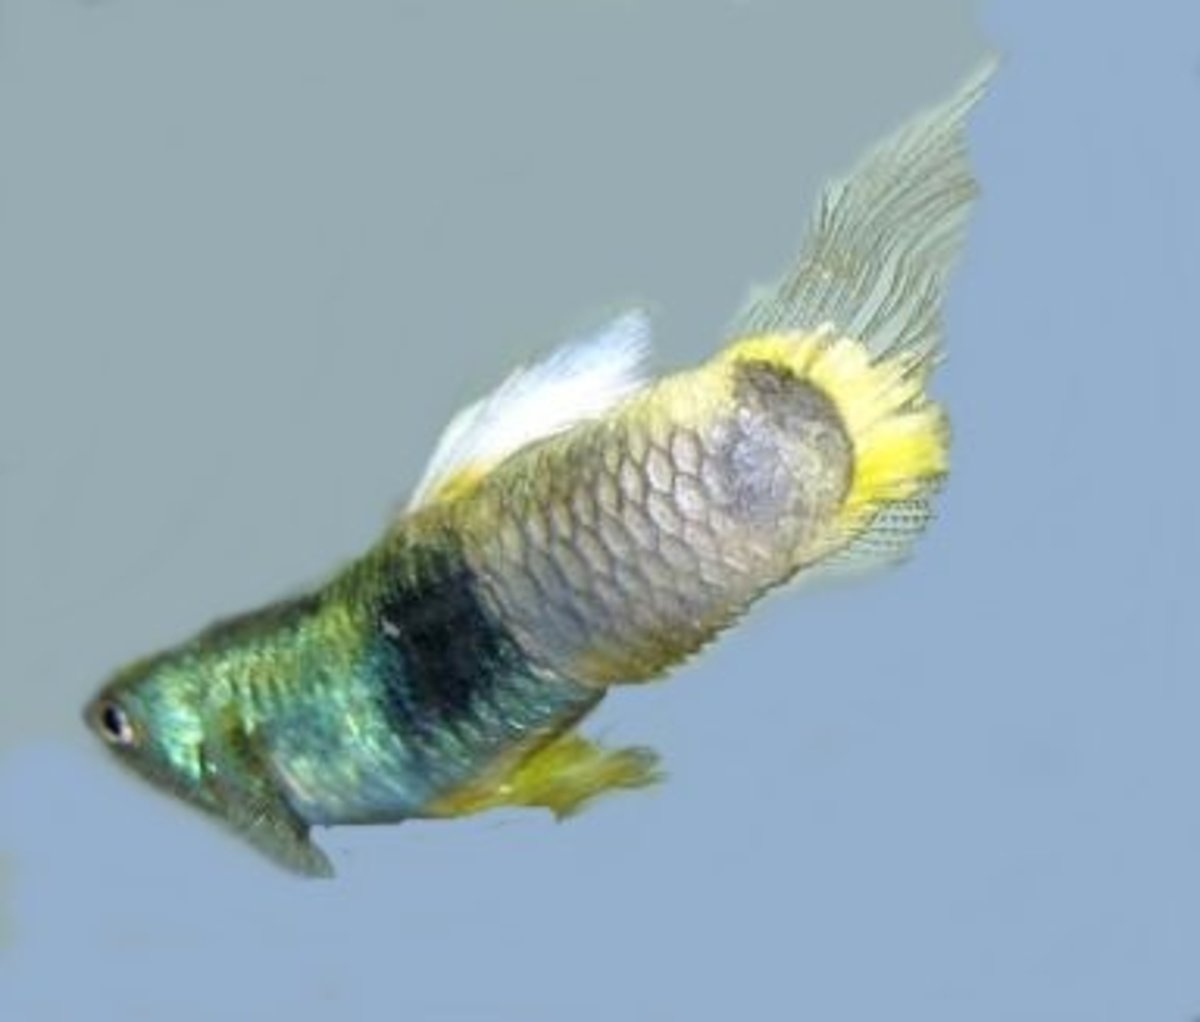 13 common betta fish diseases with photos prevention for Betta fish diseases